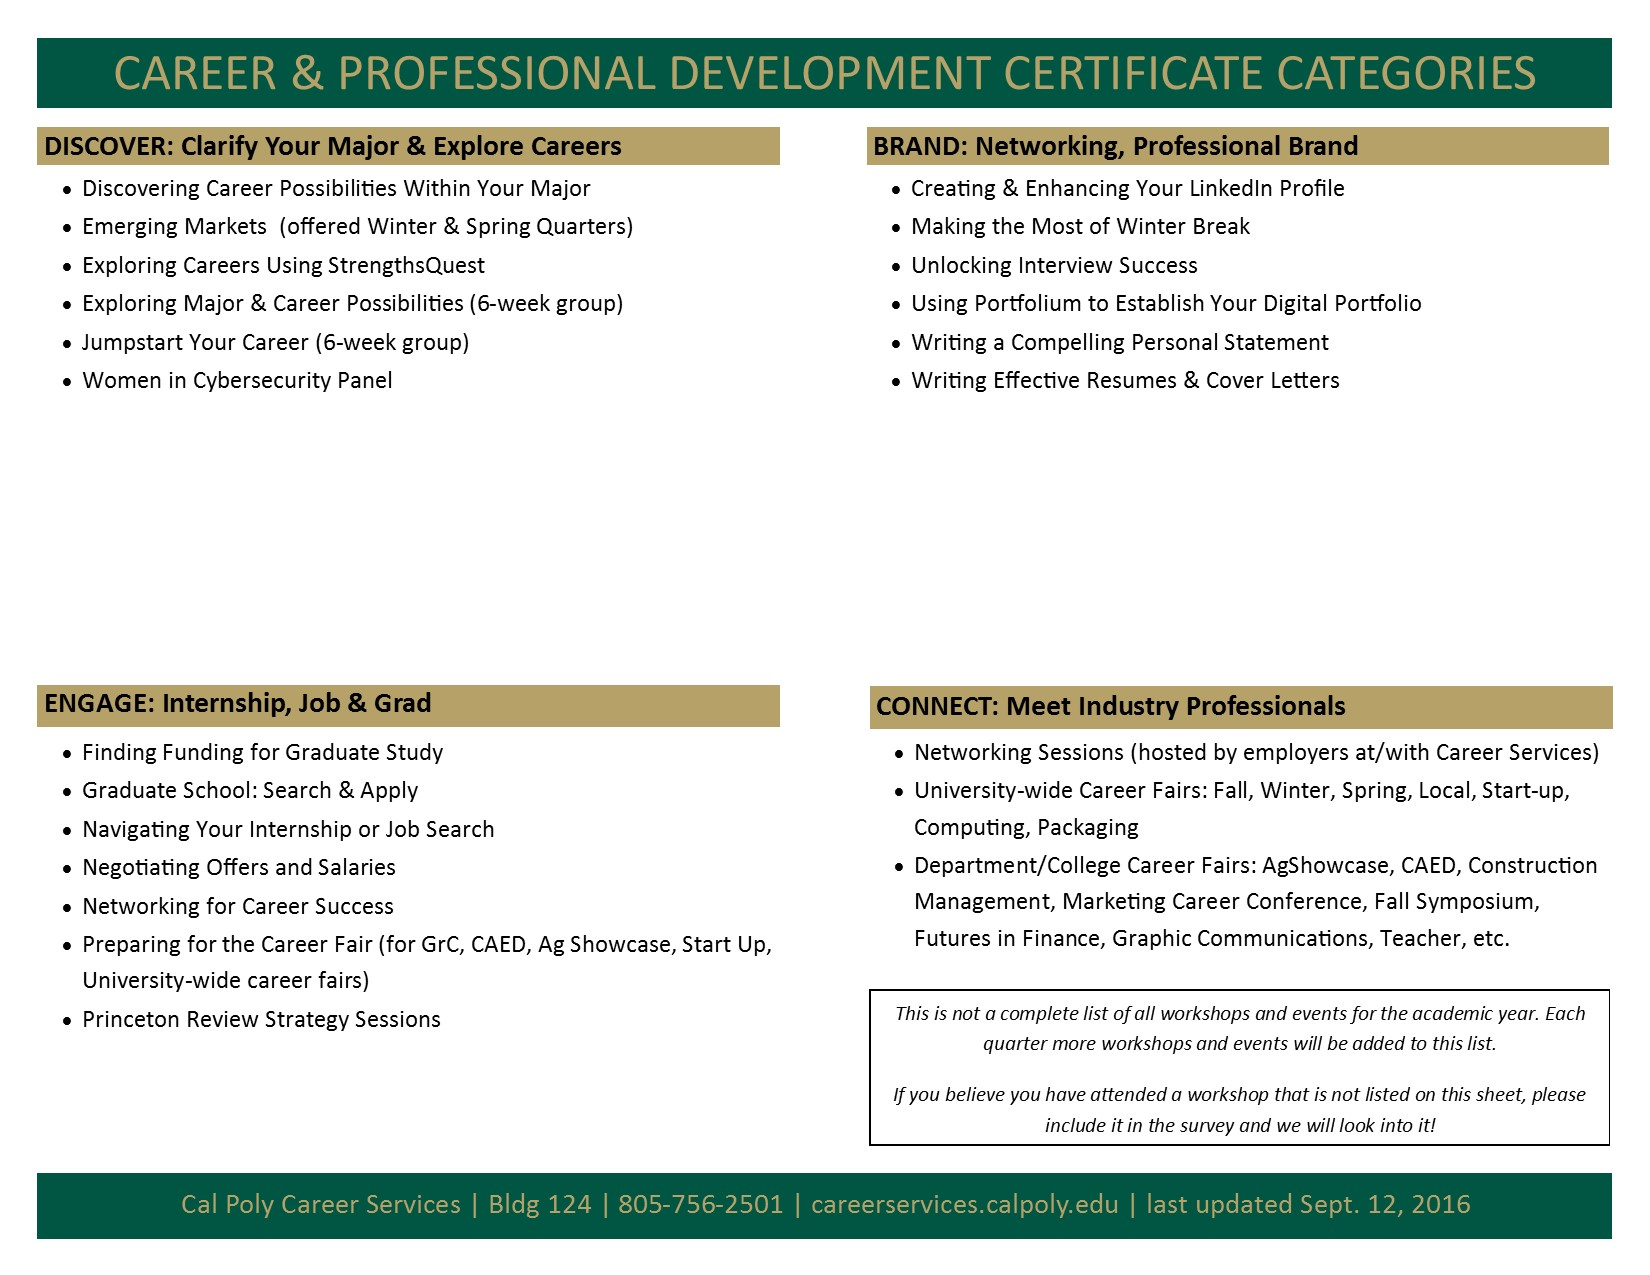 Career and Professional Development Certificate Program Workshops